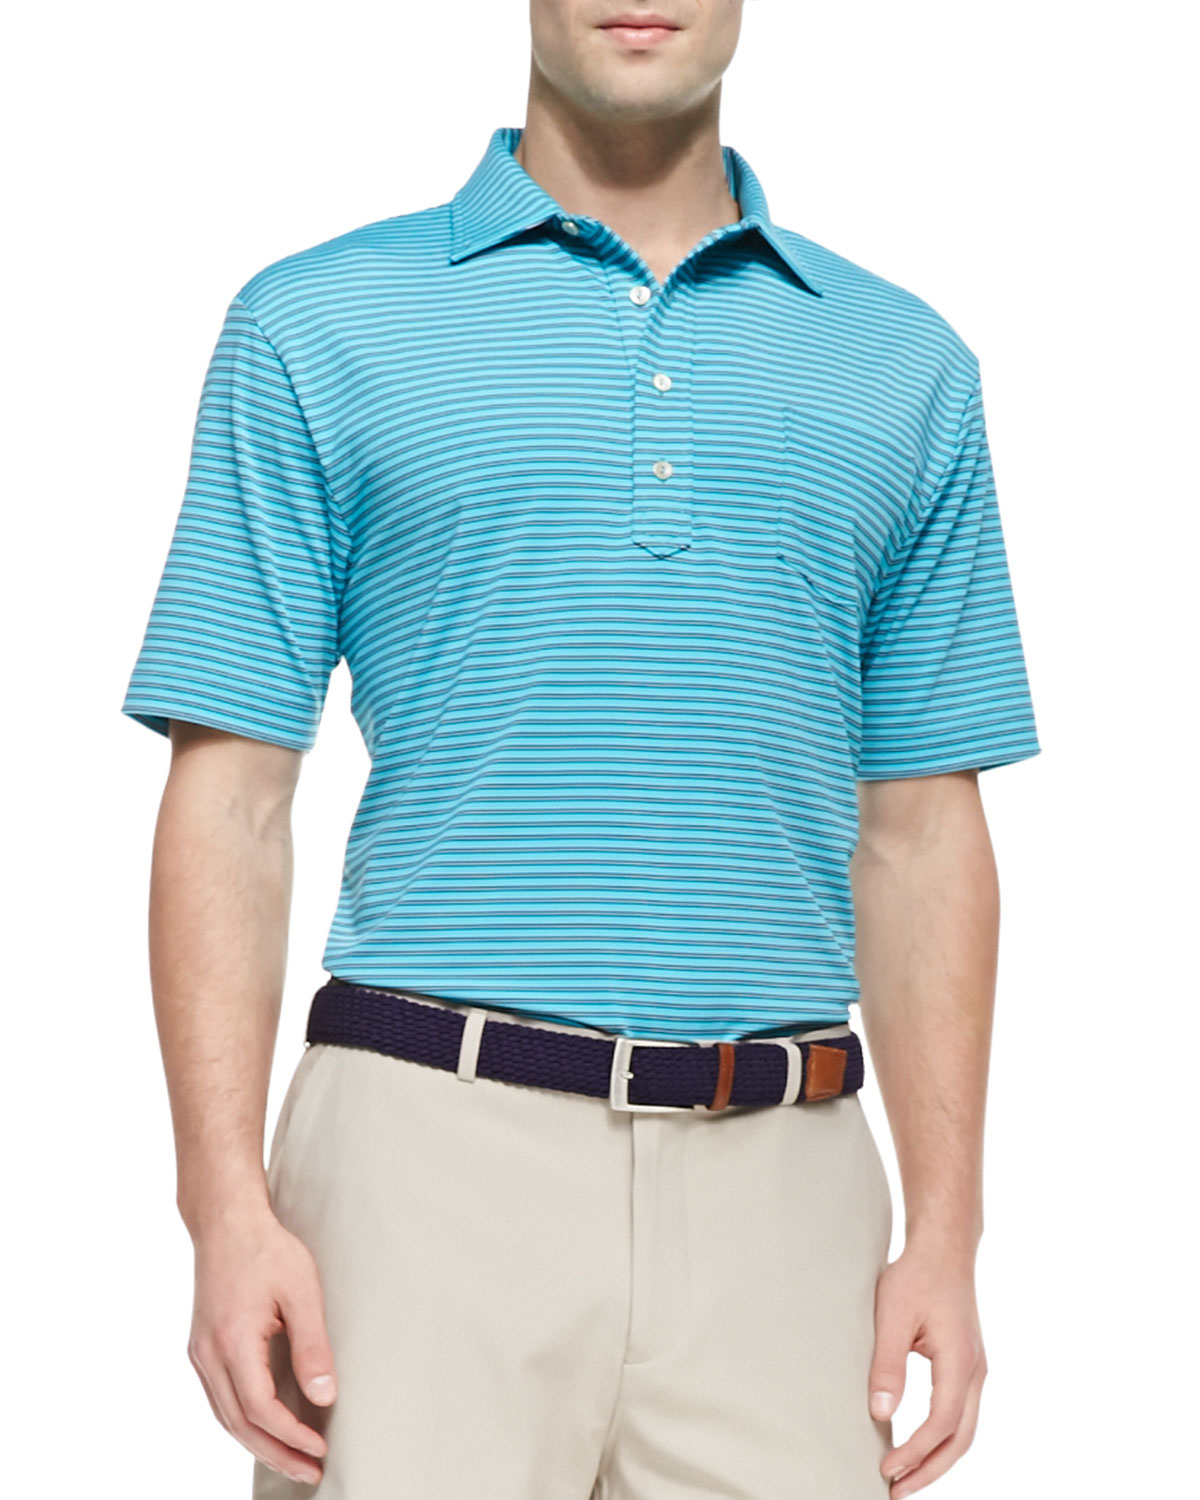 Peter millar e4 maritime striped polo in blue for men lyst for Peter millar women s golf shirts